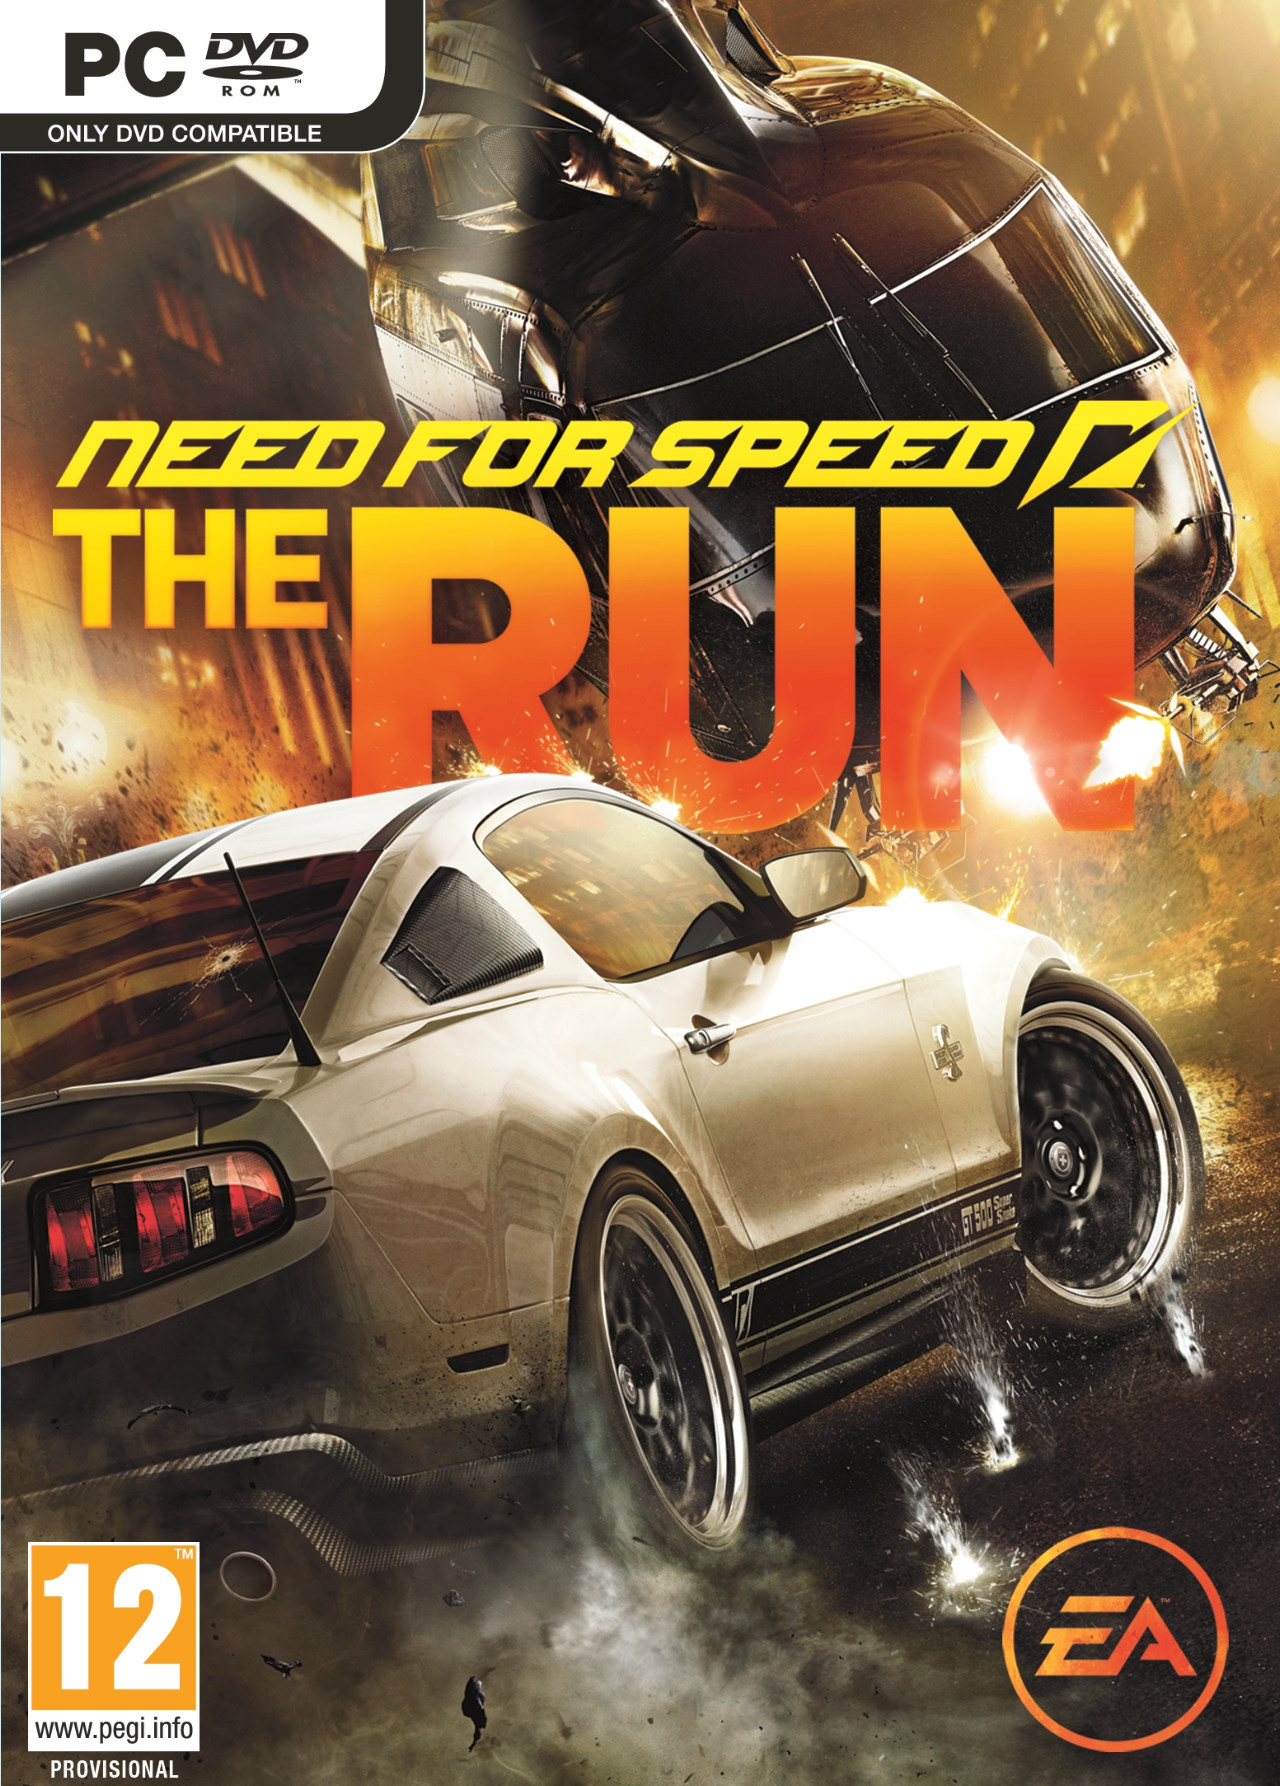 [PC/PS3/XBOX360/Wii/N3DS] Need For Speed The Run Nfsrunpcpftpegijpgjpgcopy